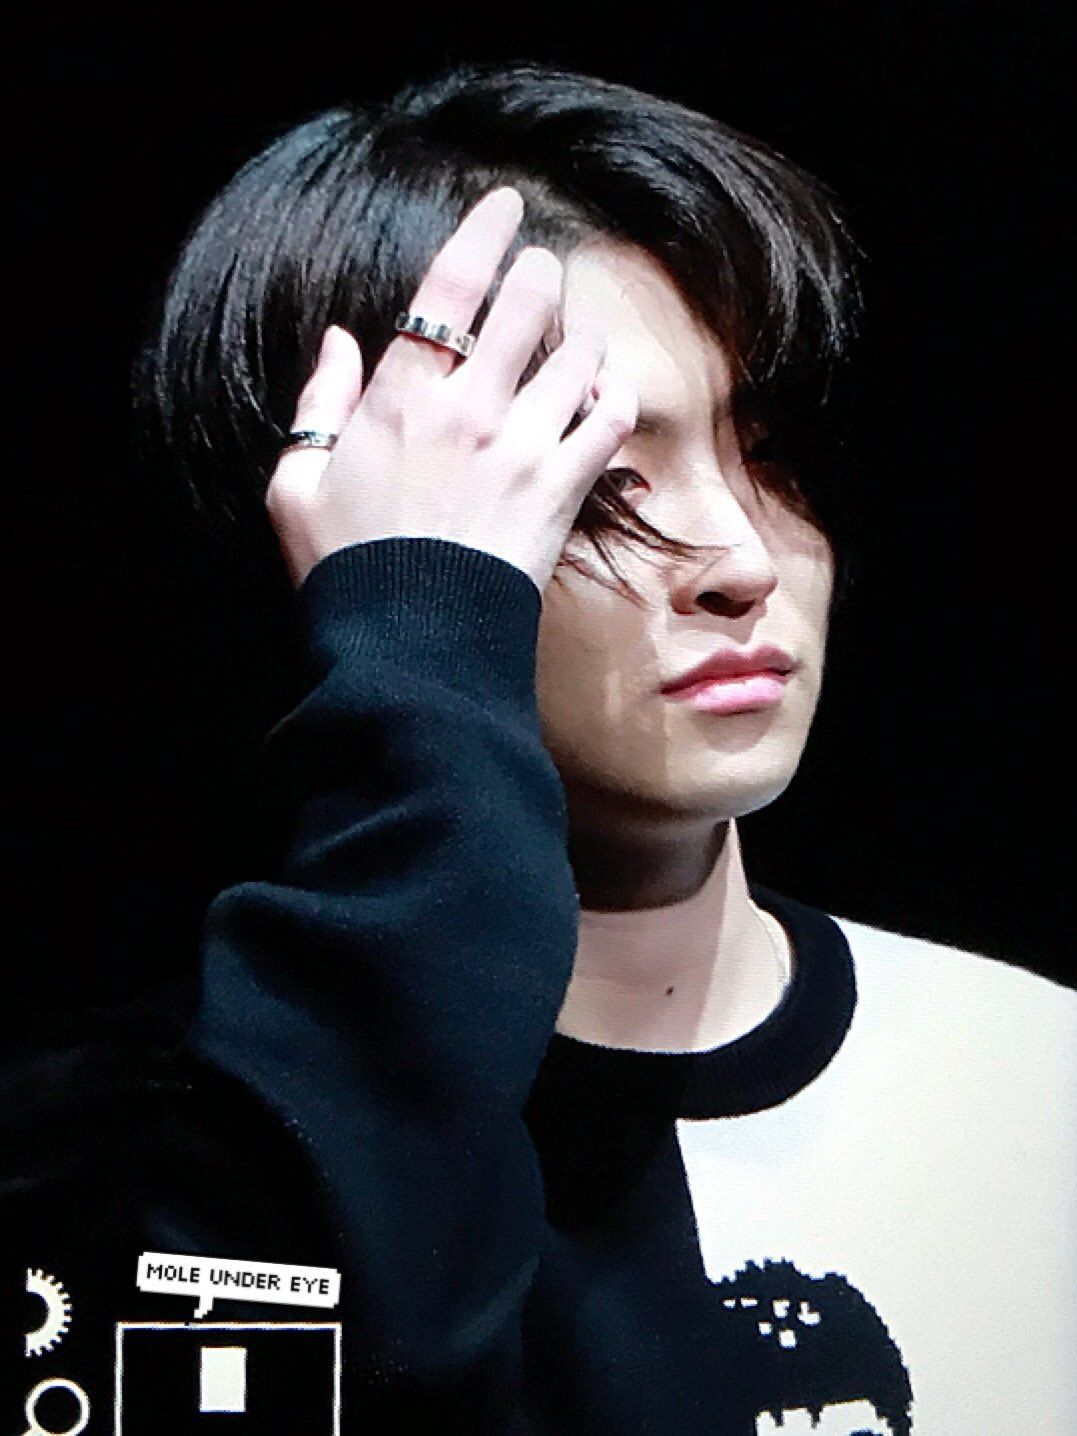 Pin by AsianWorldLover (^o^) on Youngjae | Got7 in 2019